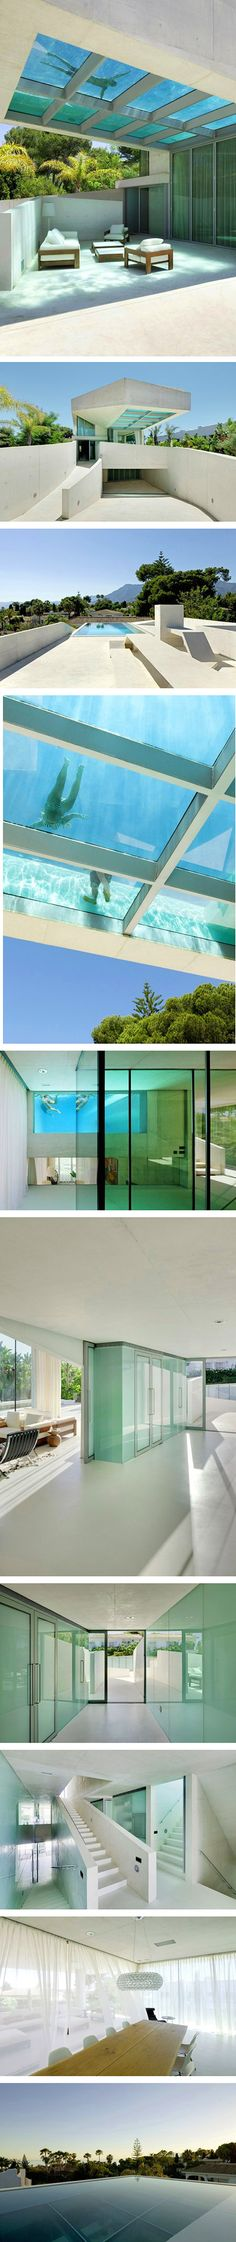 When we think of a private home with a built-in pool, we don't usually picture it on the roof. But the Jellyfish House, located in Marbella on the Mediterranean coast of Spain, features just that. Wiel Arets Architects chose to cantilever the pool from here because neighboring buildings block its view onto the nearby sea. This solution means that the beach is always in sight while sunbathing or swimming.